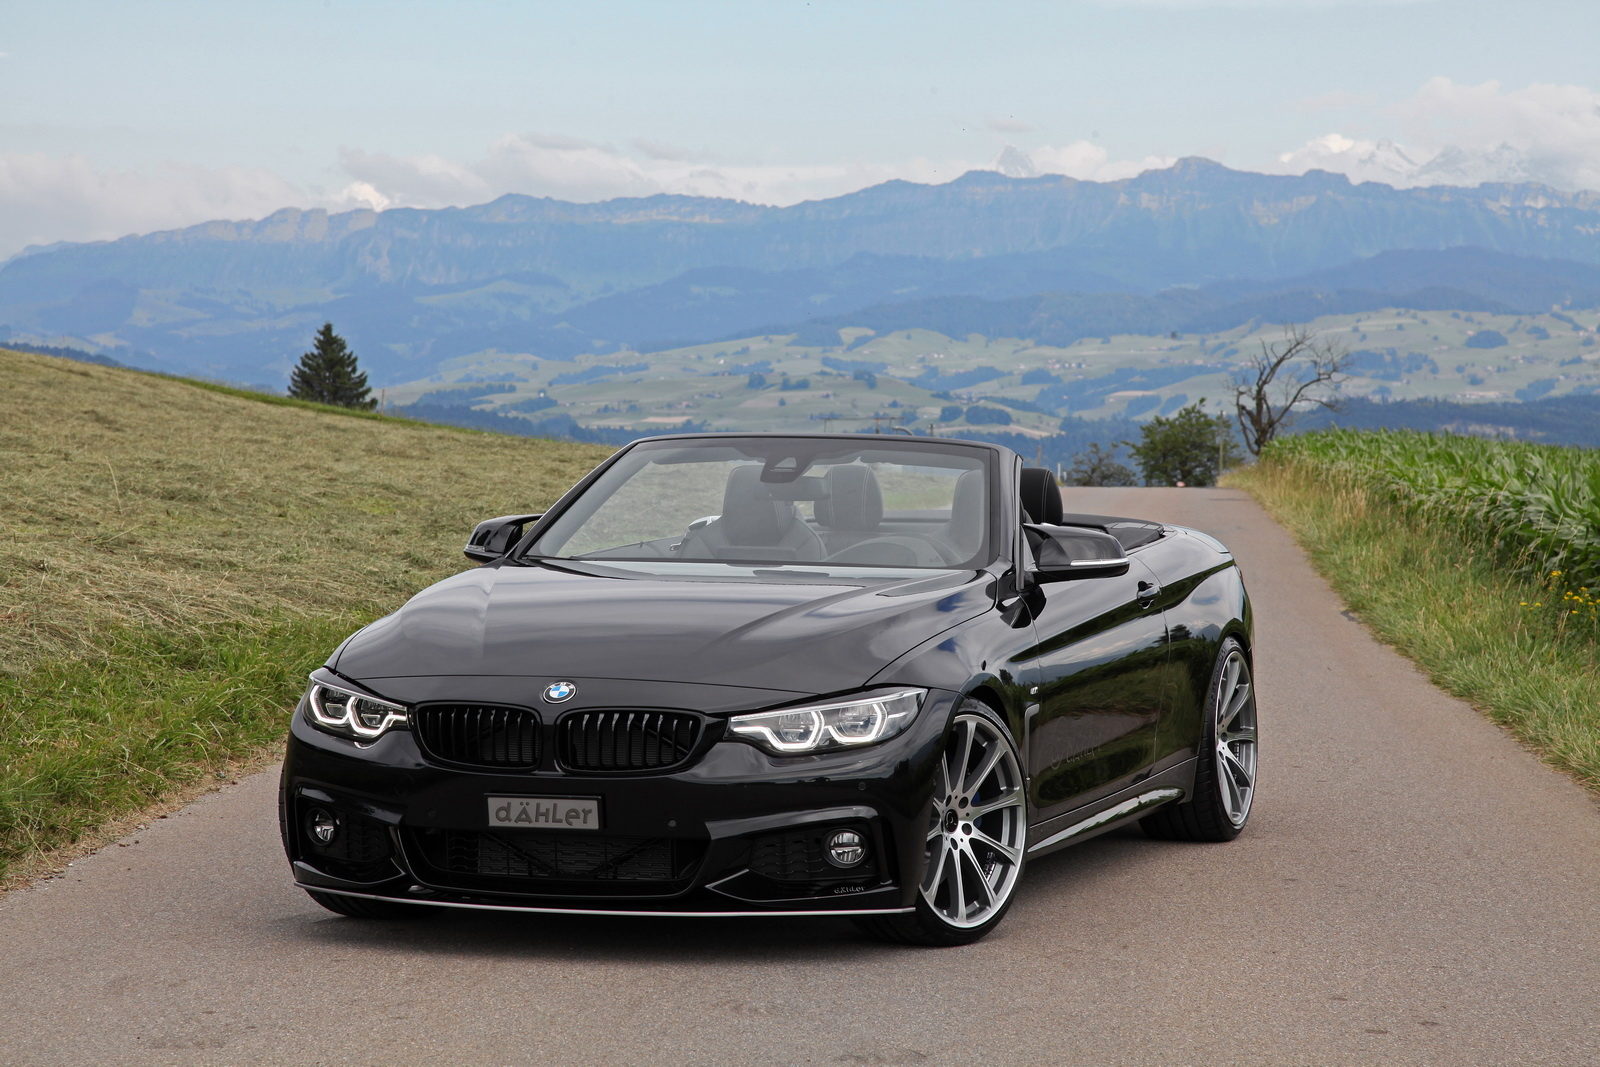 bmw 440i convertible by daehler tuning bmw car tuning. Black Bedroom Furniture Sets. Home Design Ideas